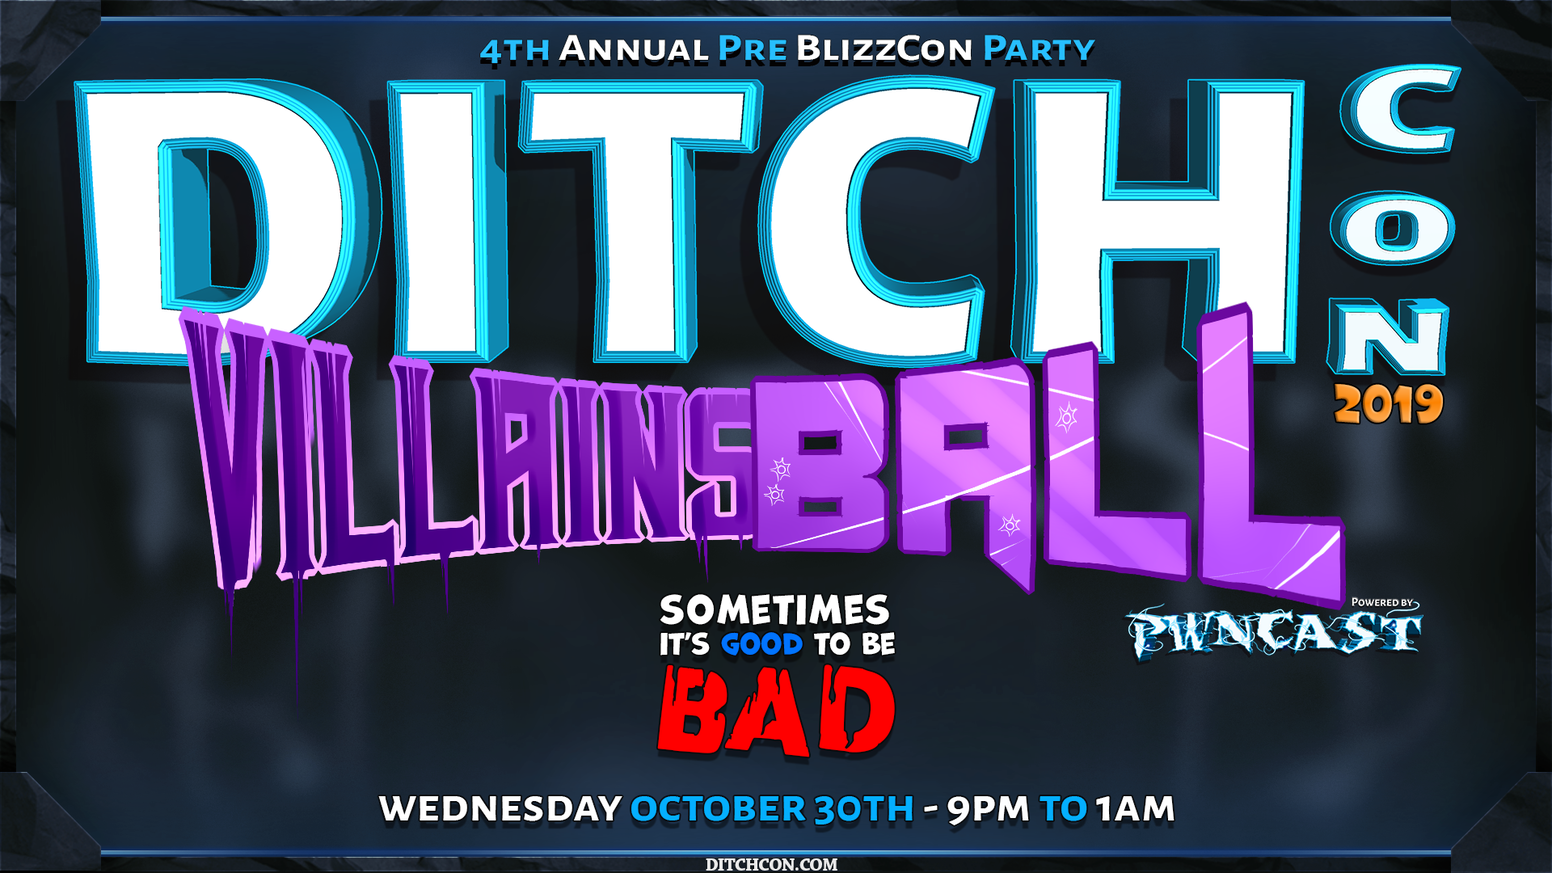 4th Annual Pre BlizzCon Party Powered by PWNCAST. DITCH-FREE zone. Join us for villains, drinks & dancing on October 30, 2019